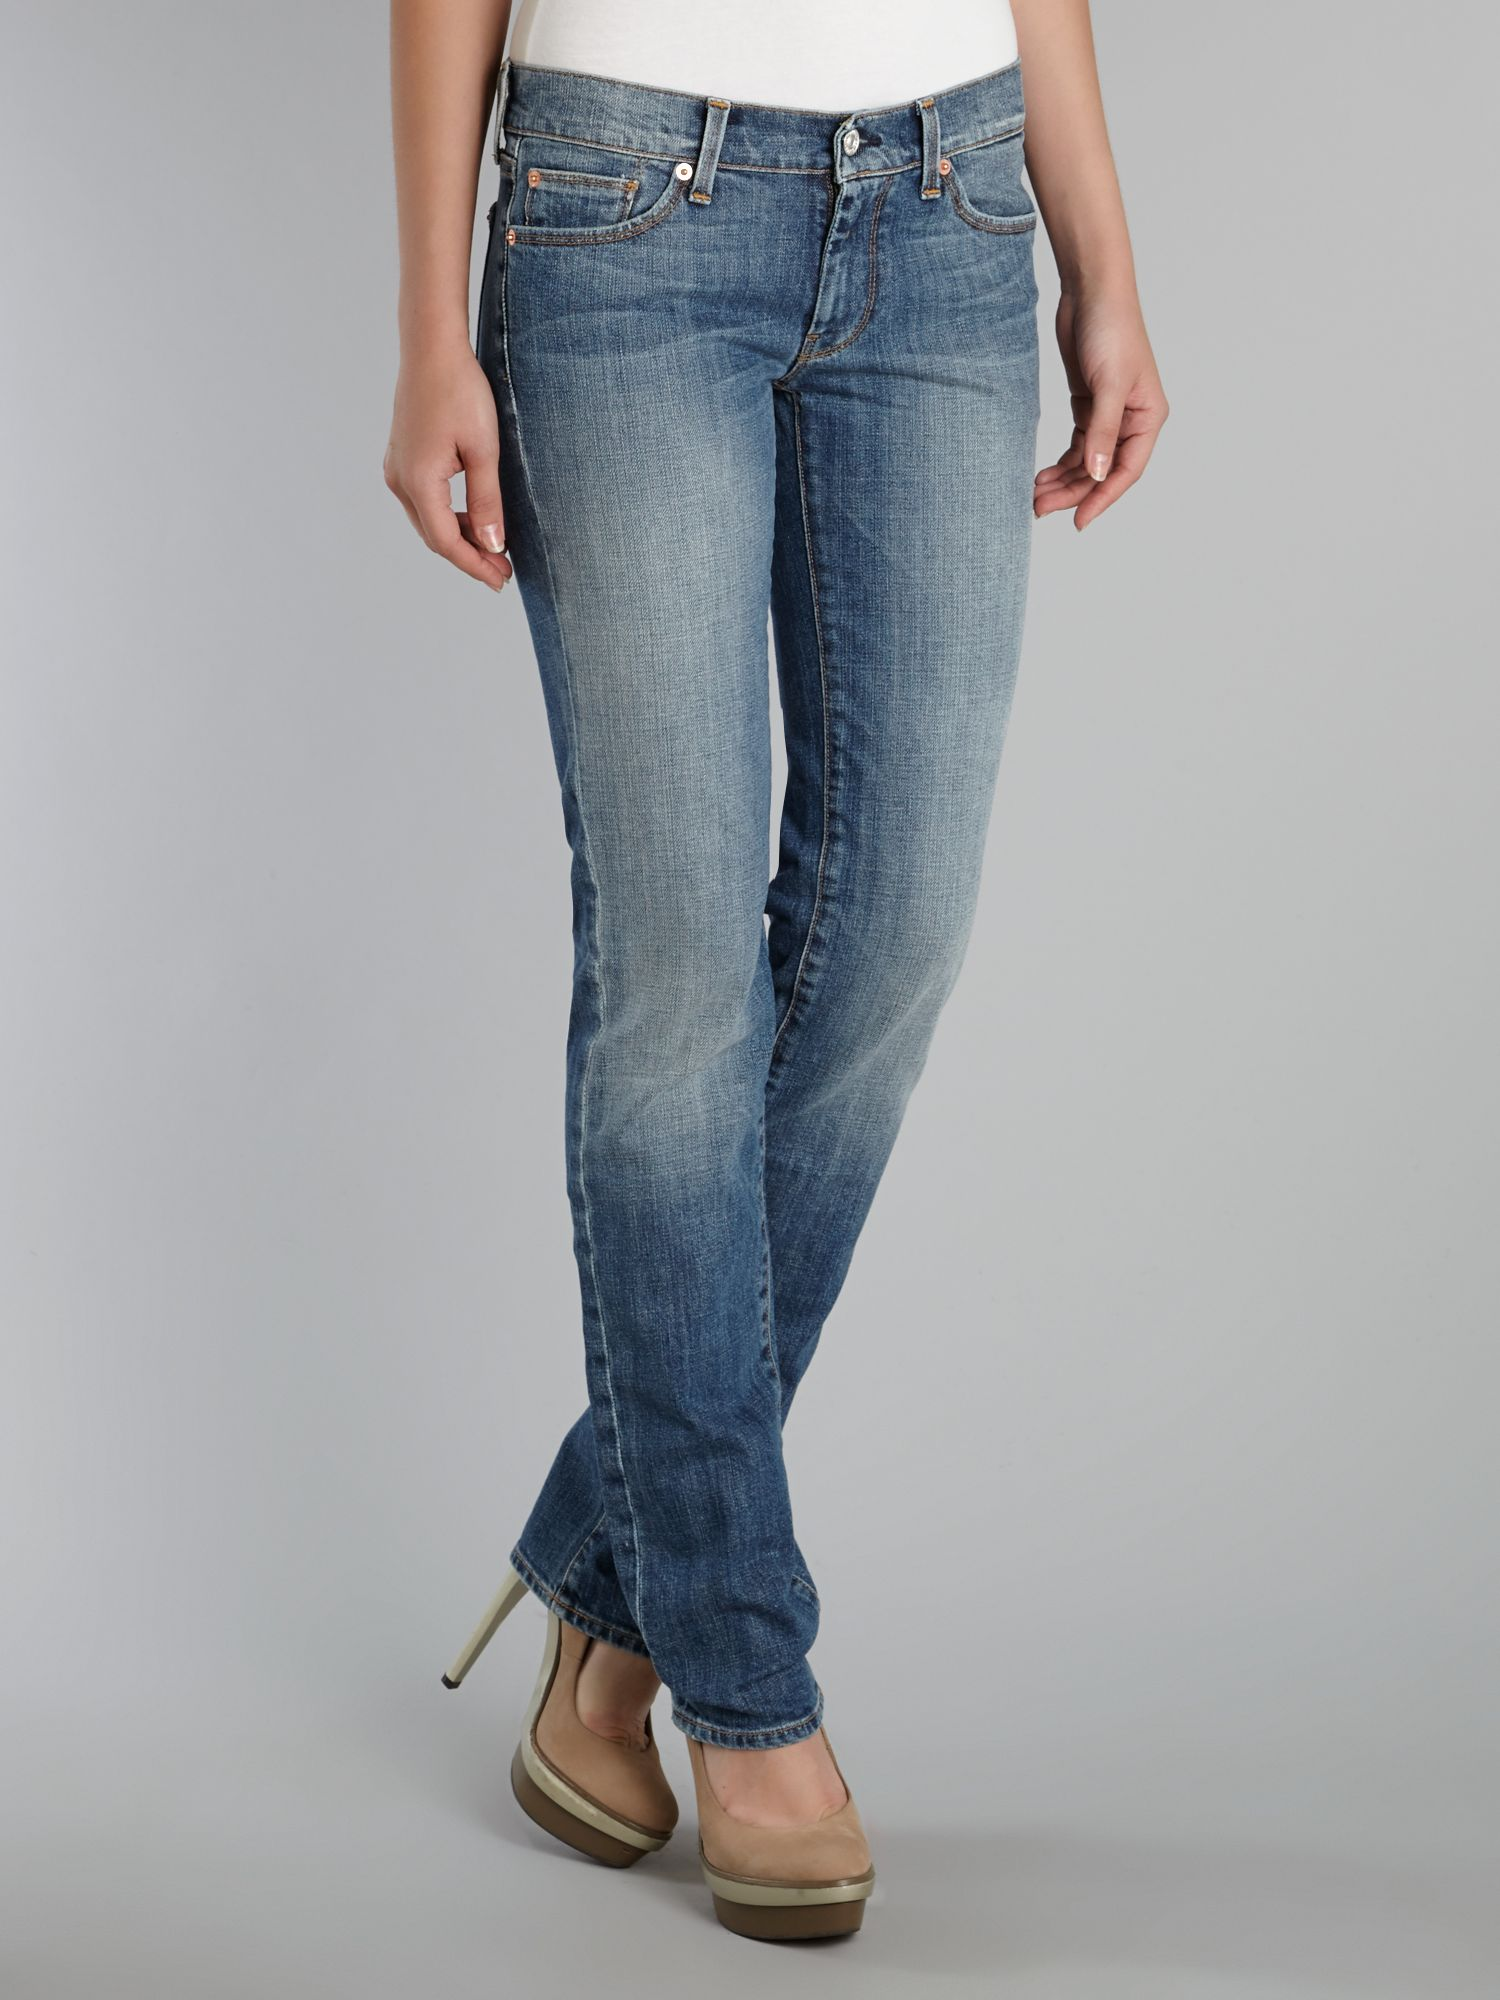 Straight leg jeans in Medium NY